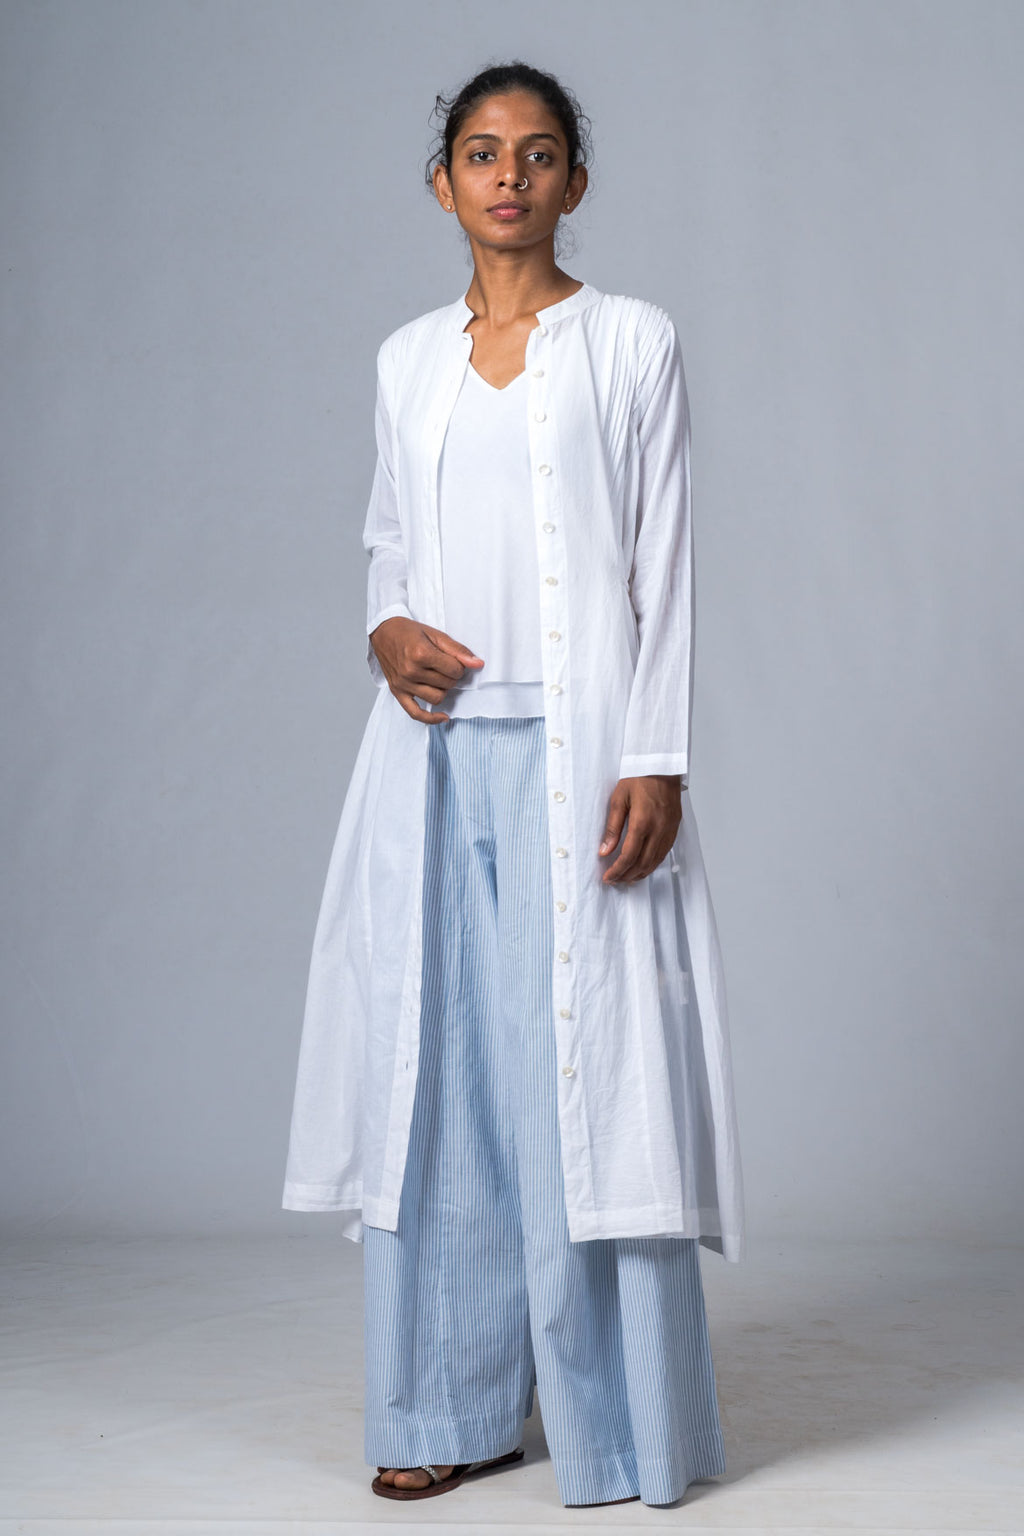 VEDIKA WHITE ORGANIC COTTON JACKET DRESS - Upasana Design Studio